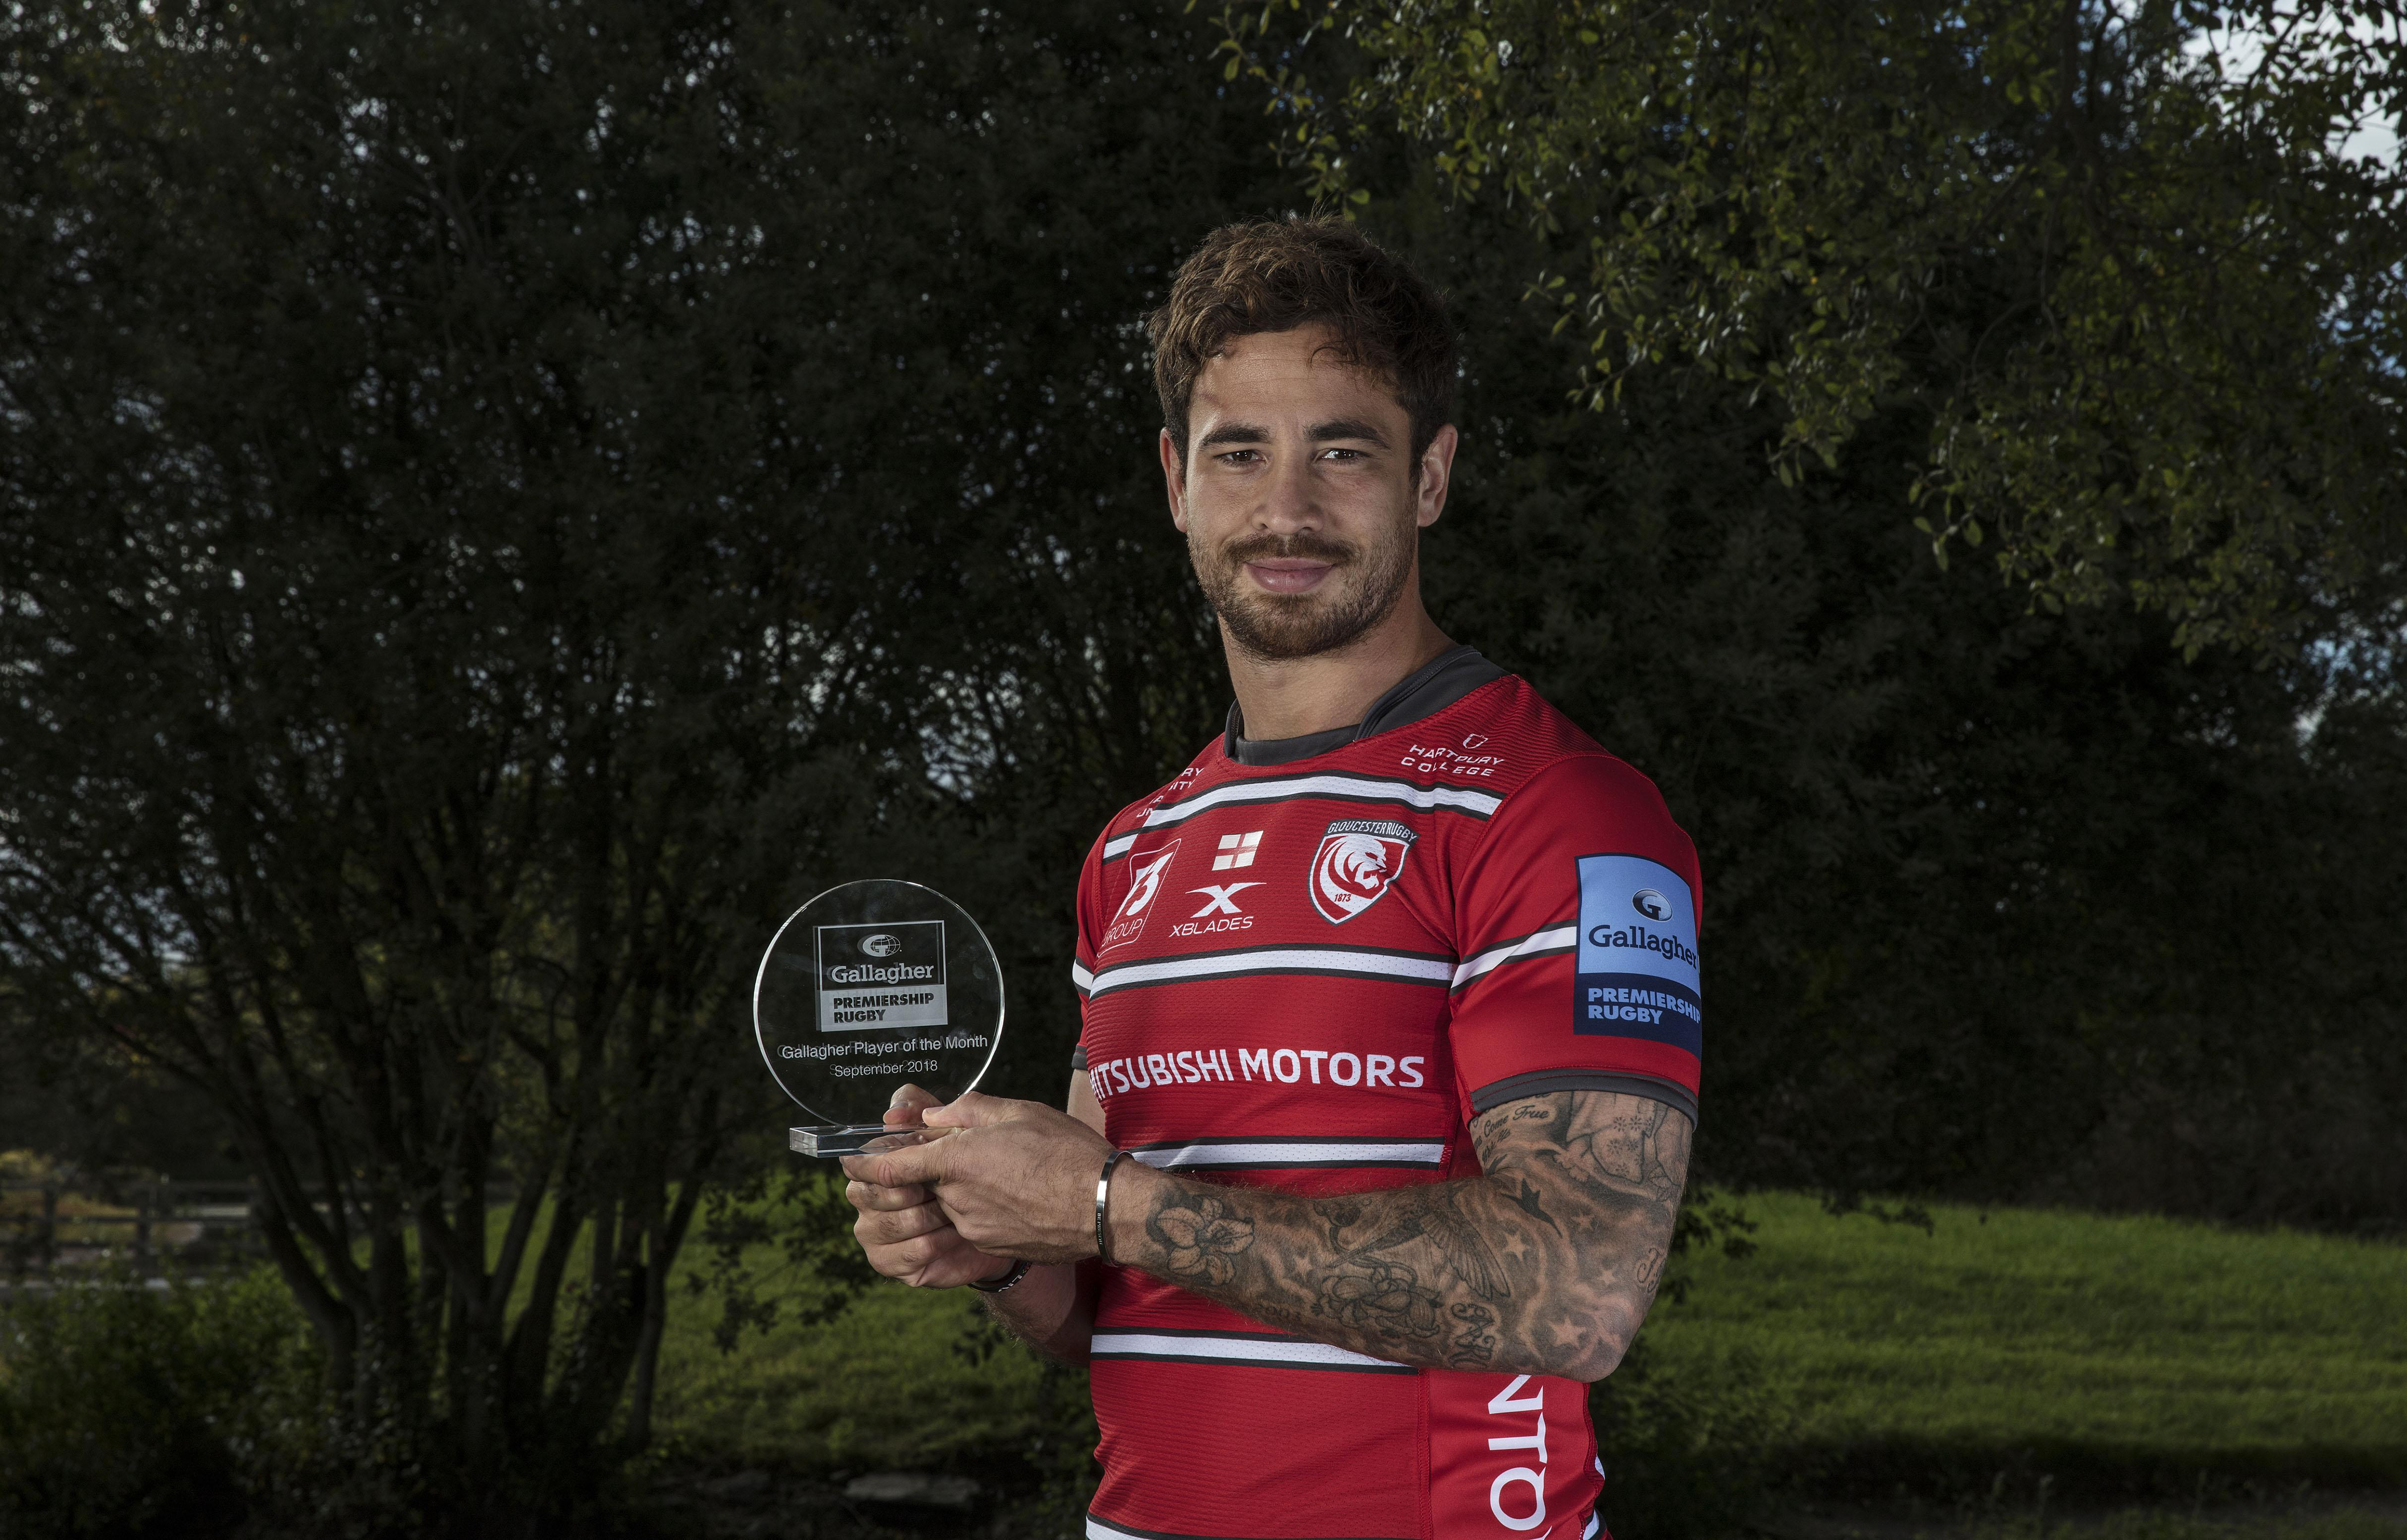 Cipriani has starred for his new club